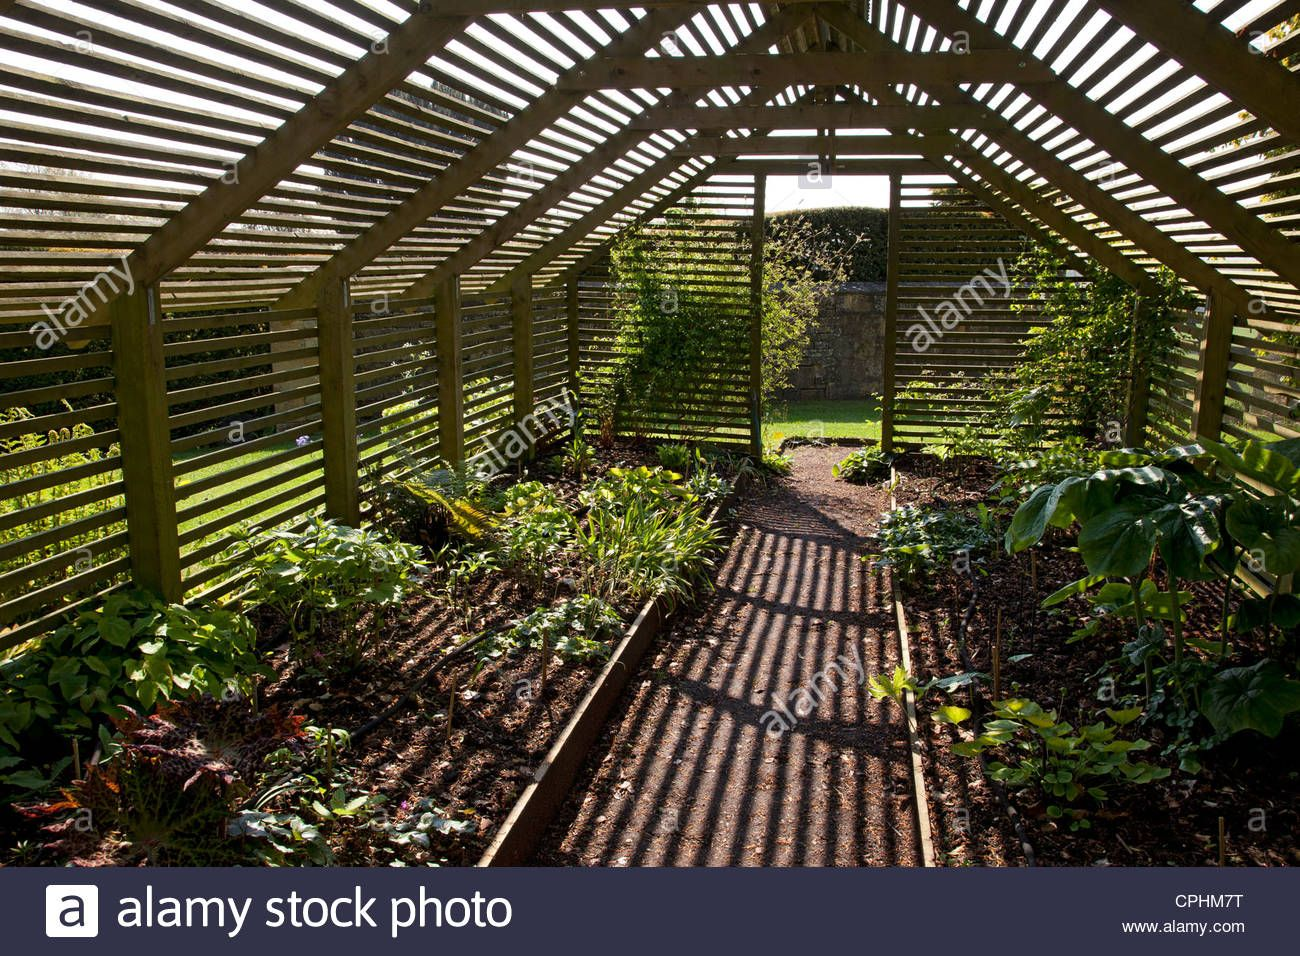 Stock Photo Wooden Slated Plant Shade House Garden England Shade House Garden Design Pergola Backyard shade house designs